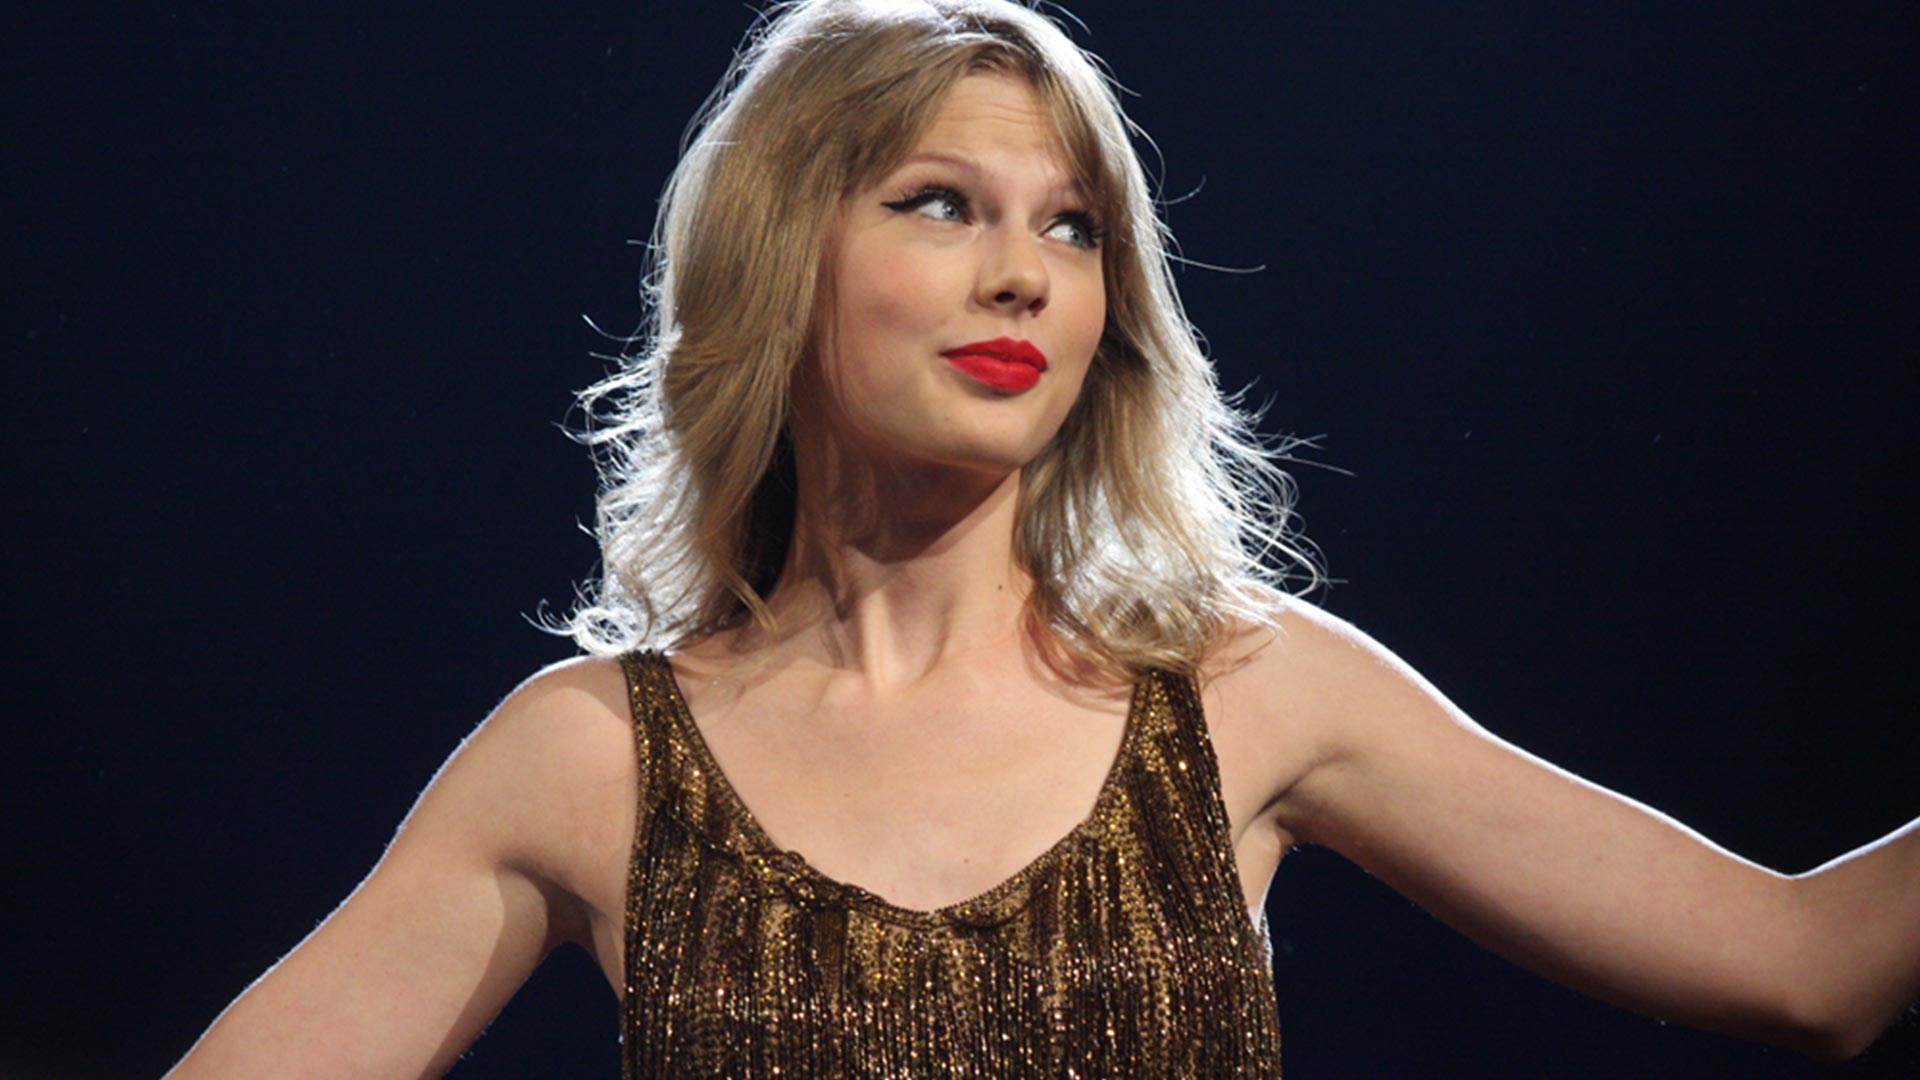 Rule number one: if you can, always be like Taylor Swift